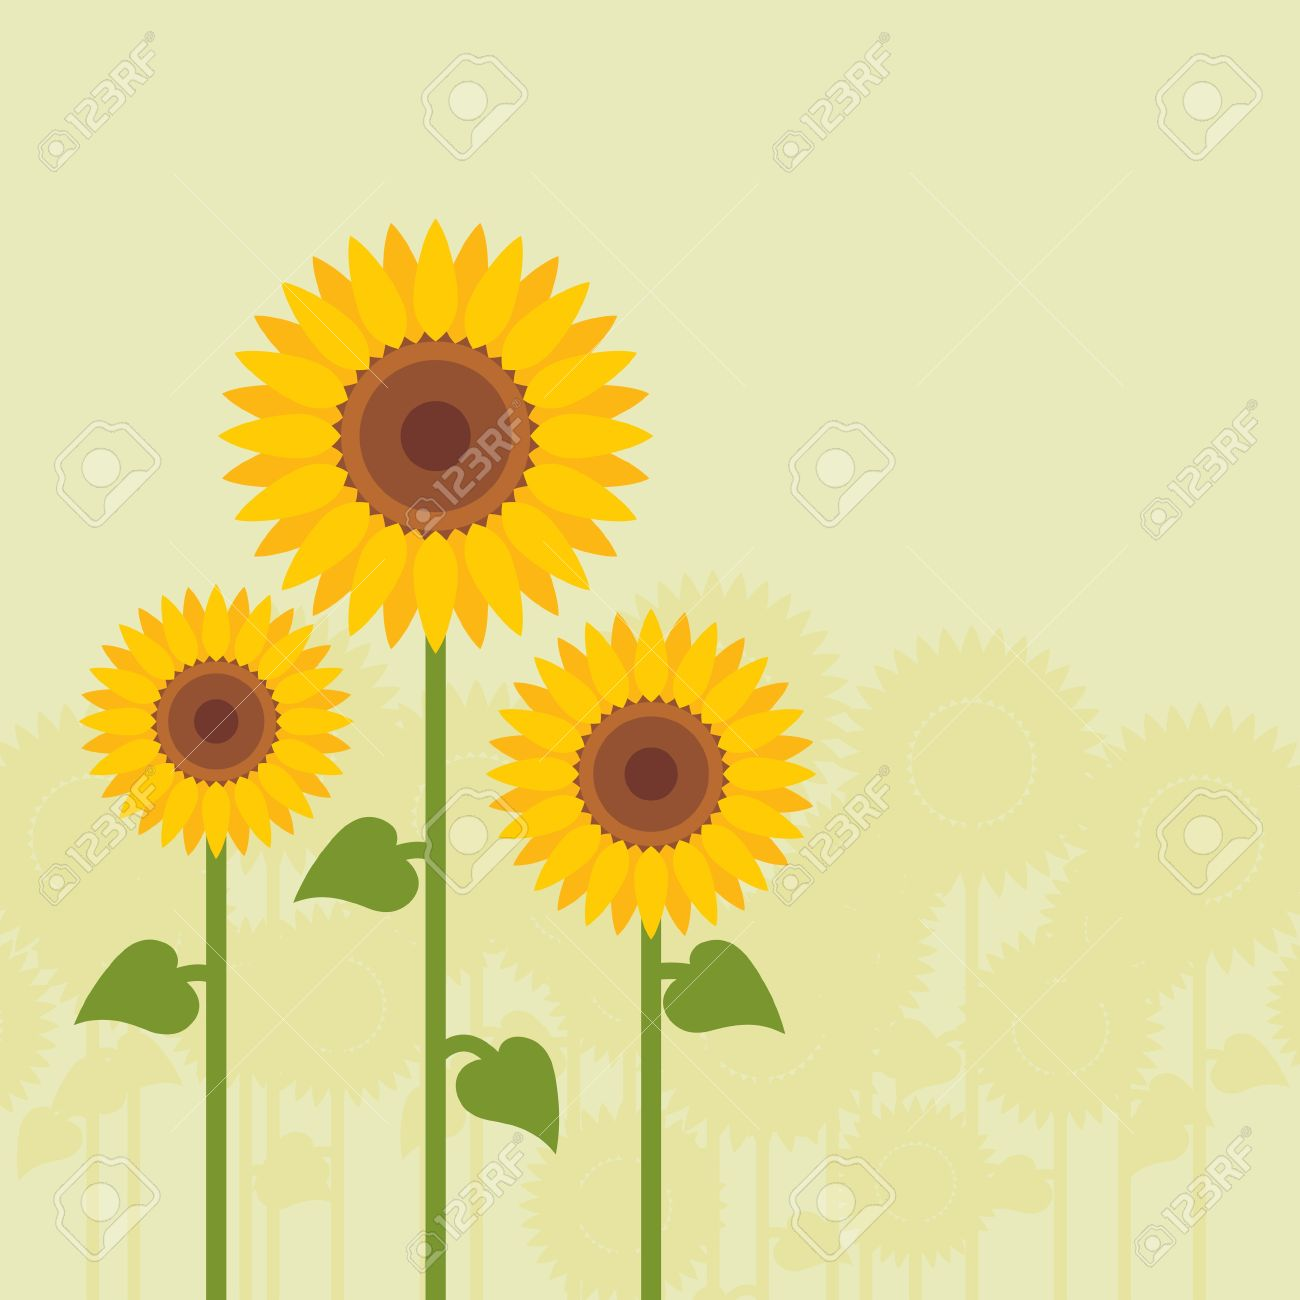 Yellow sunflowers landscape background illustration Stock Vector - 11650054